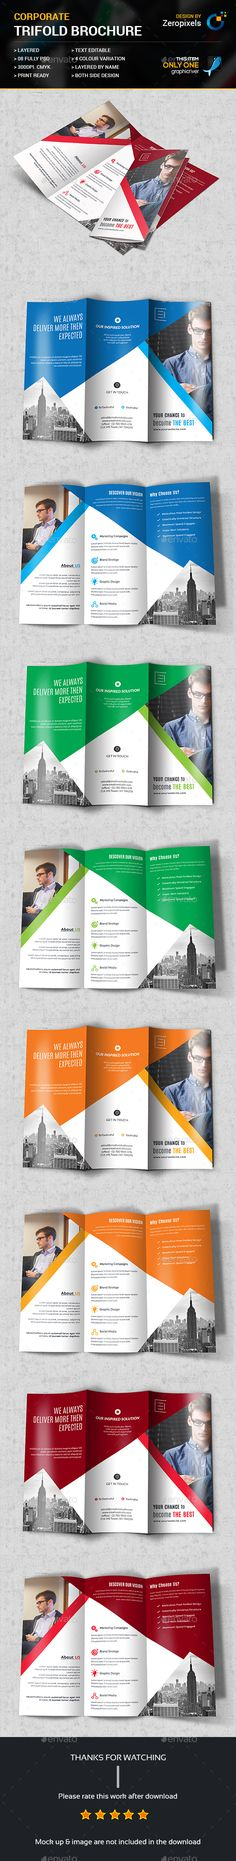 Buy Multipurpose Business Trifold Brochure by zeropixels on GraphicRiver. FEATURES: Easy Customizable and Editable Trifold Brochure in with bleed CMYK Color Design in 300 D. Booklet Design, Brochure Design, Brochure Template, Corporate Flyer, Branding, Templates, Brochures, Flyers, Business